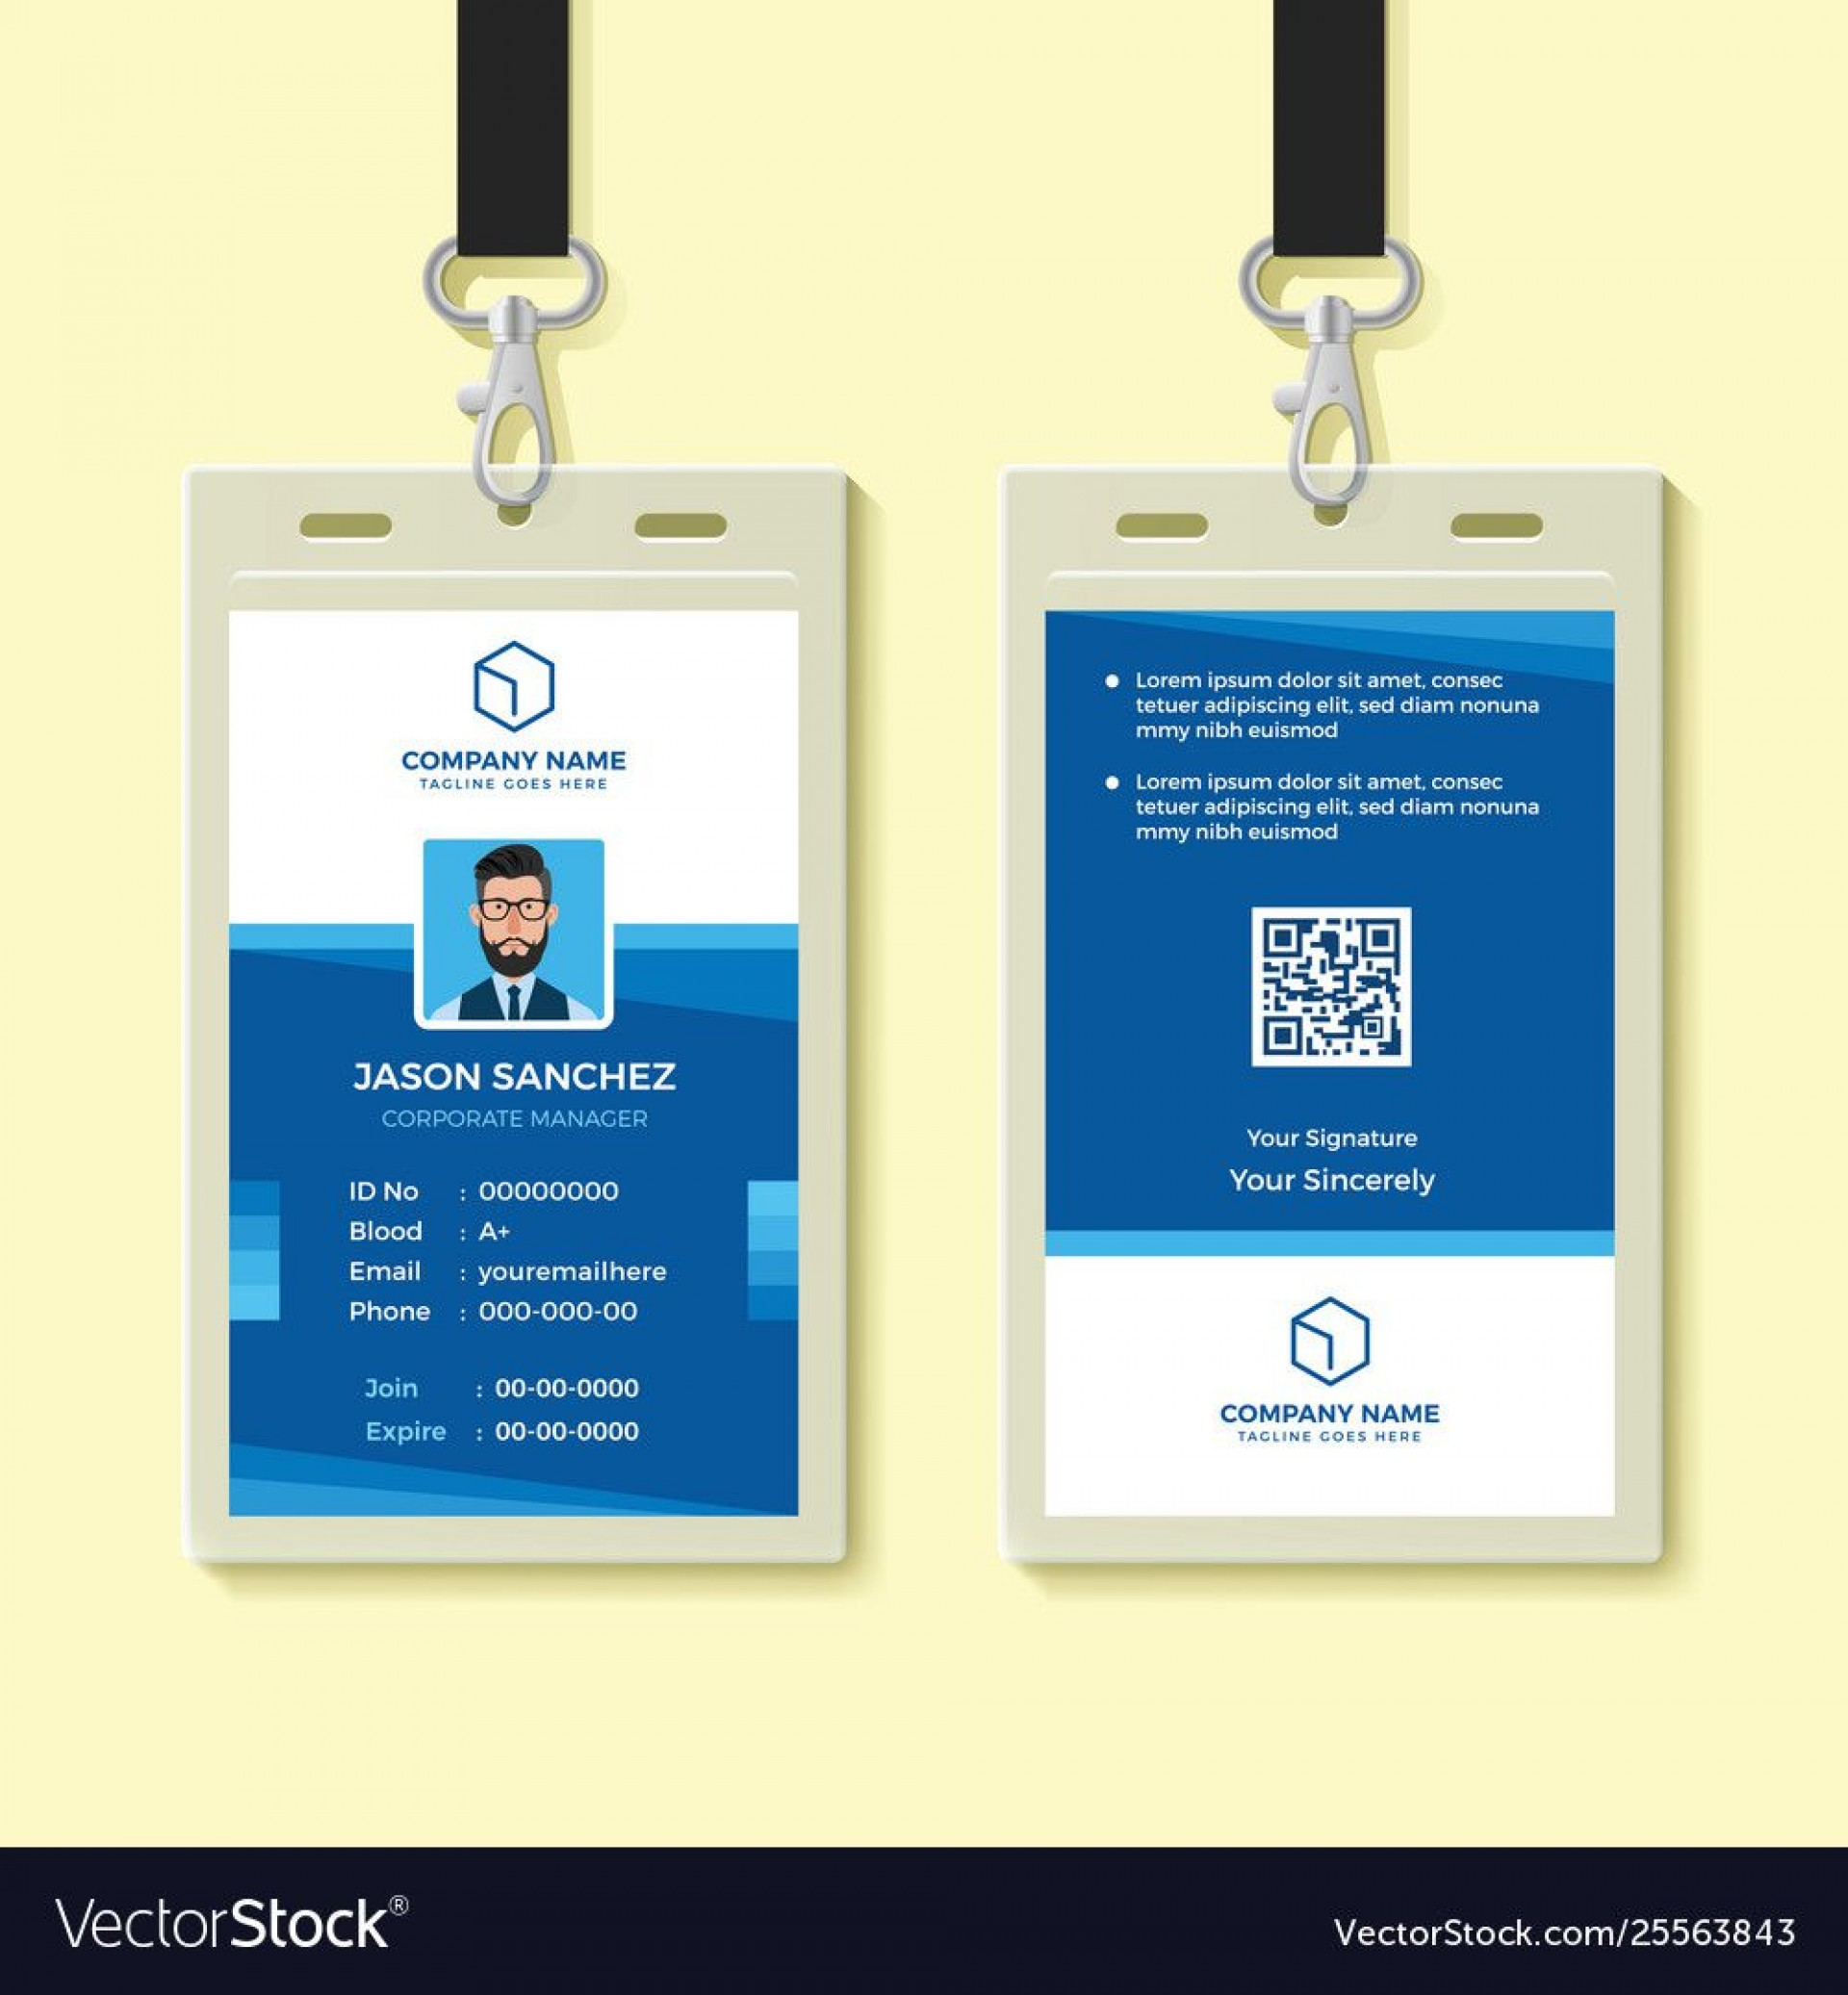 005 Unforgettable Employee Id Card Template Highest Clarity  Free Download Psd Word1920